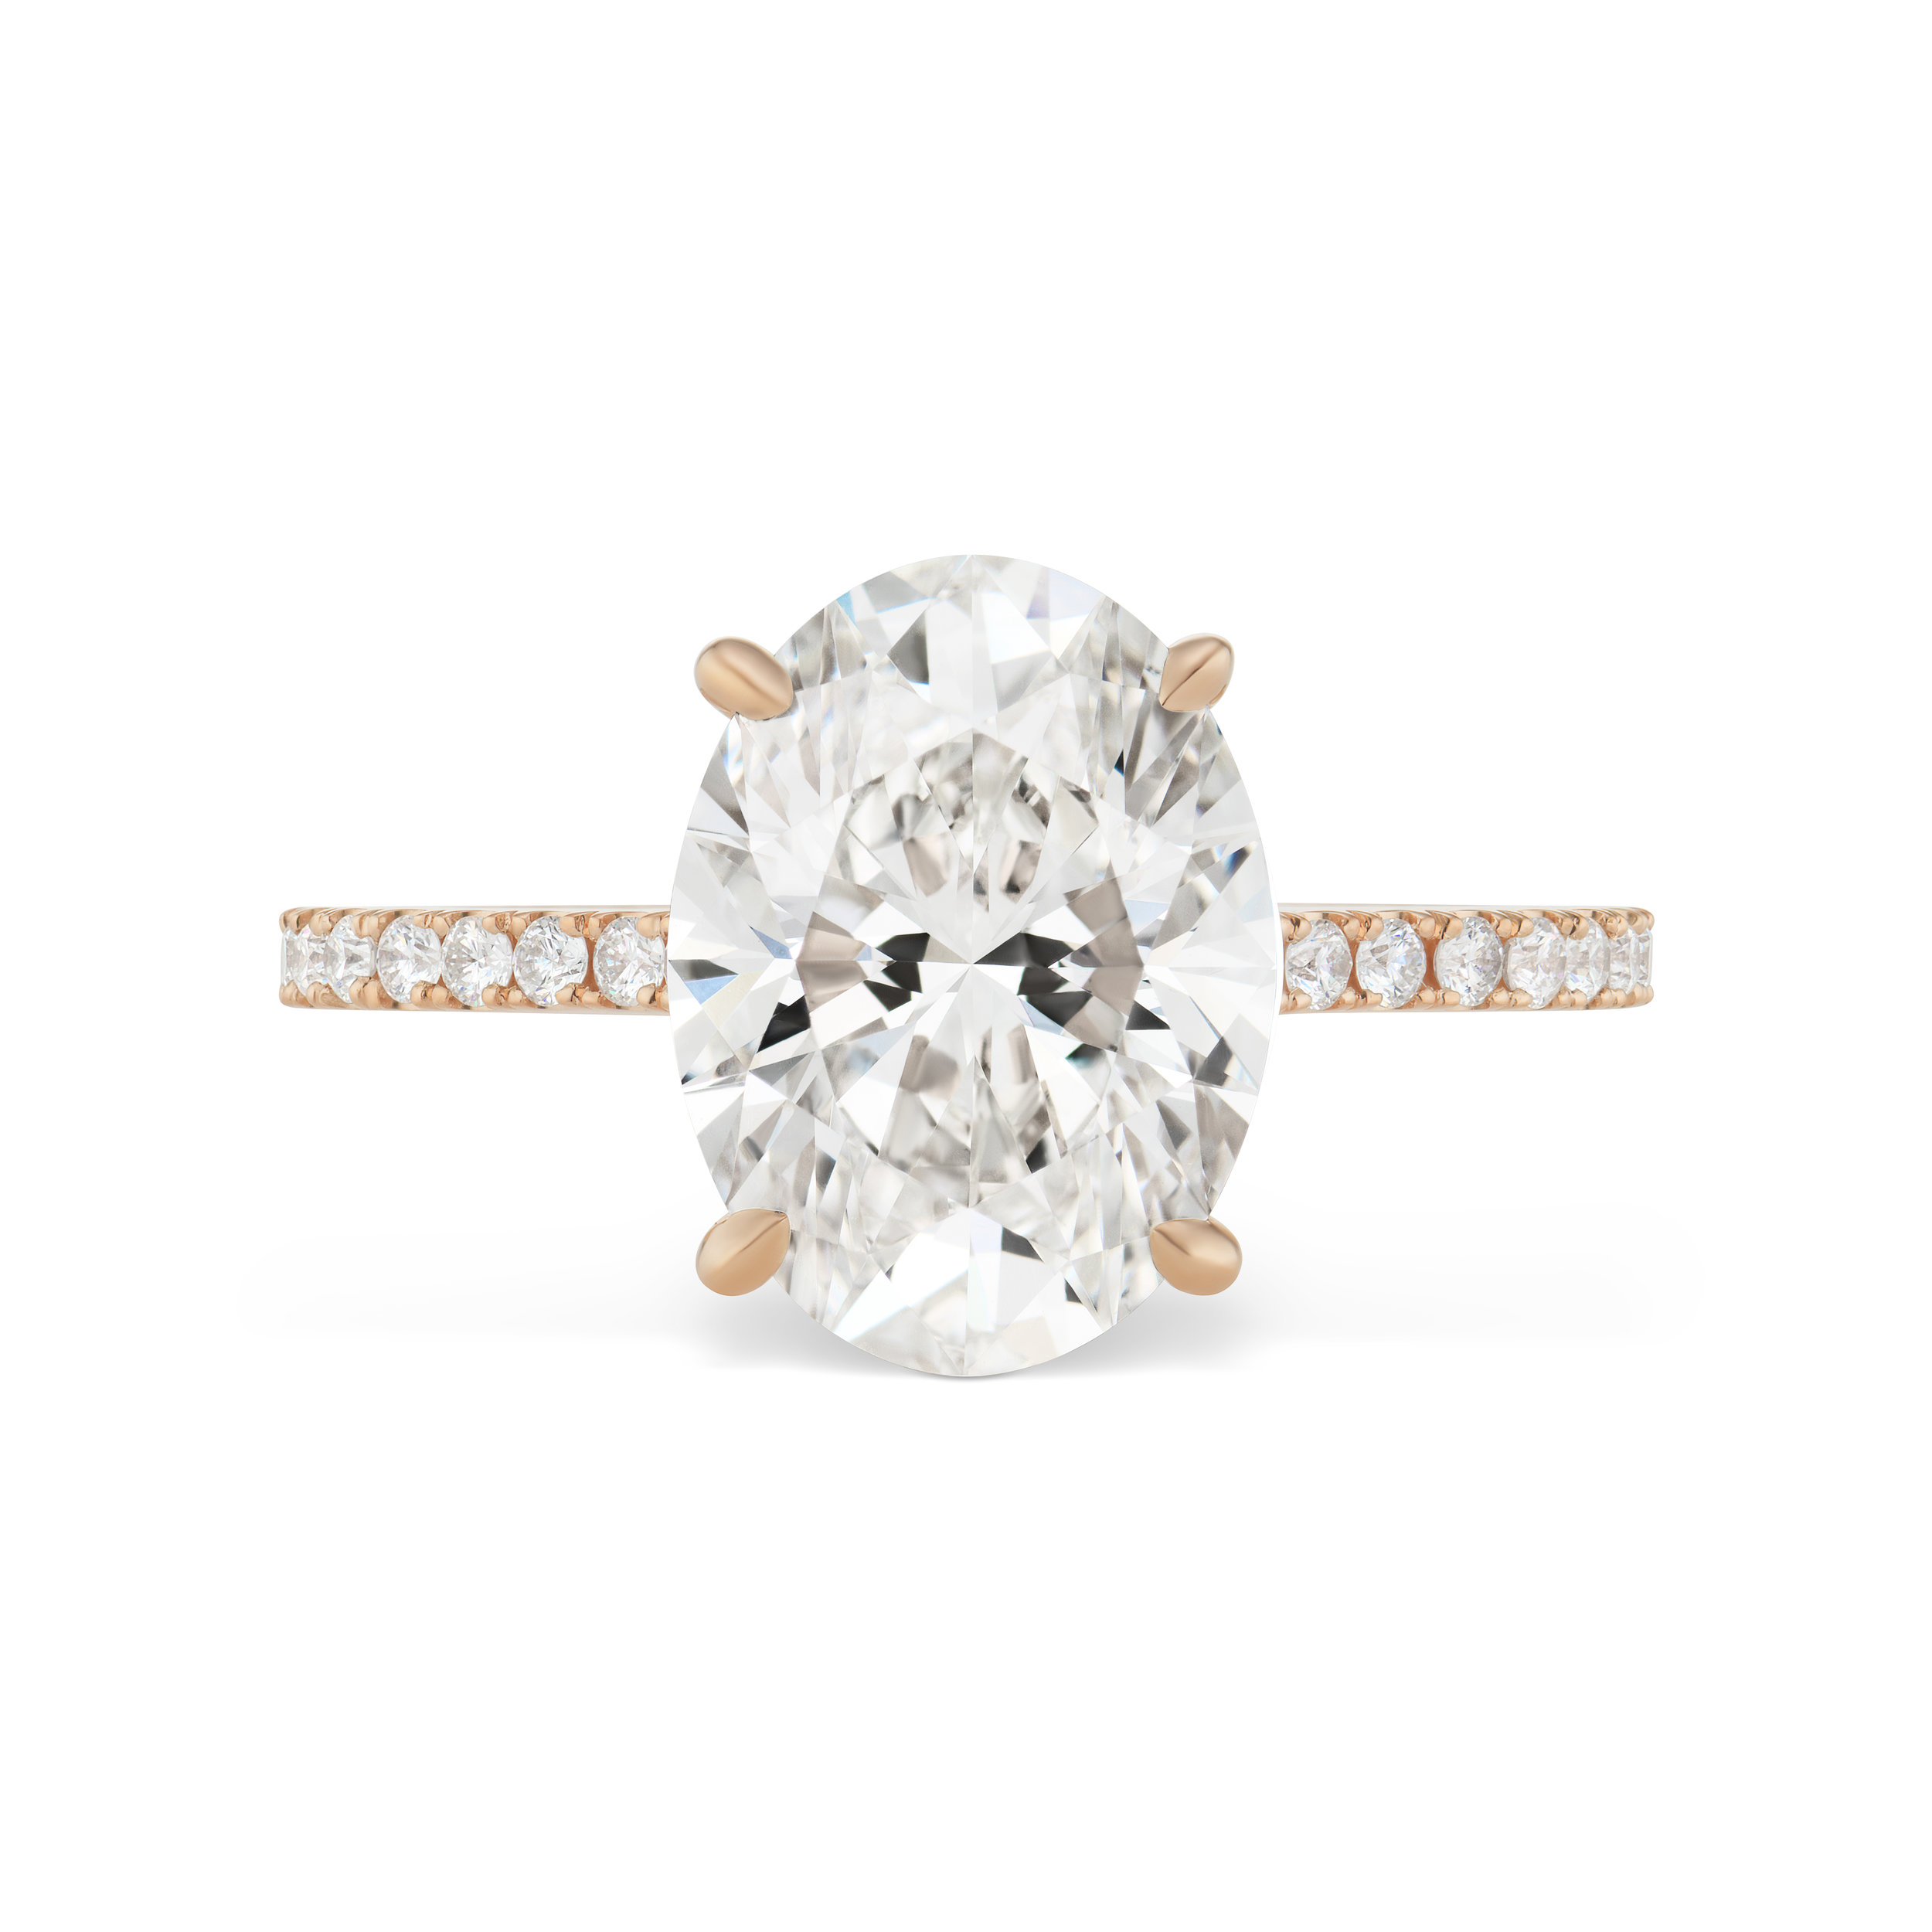 Oval diamond ring with micropavé band, mounted in rose gold. .jpg